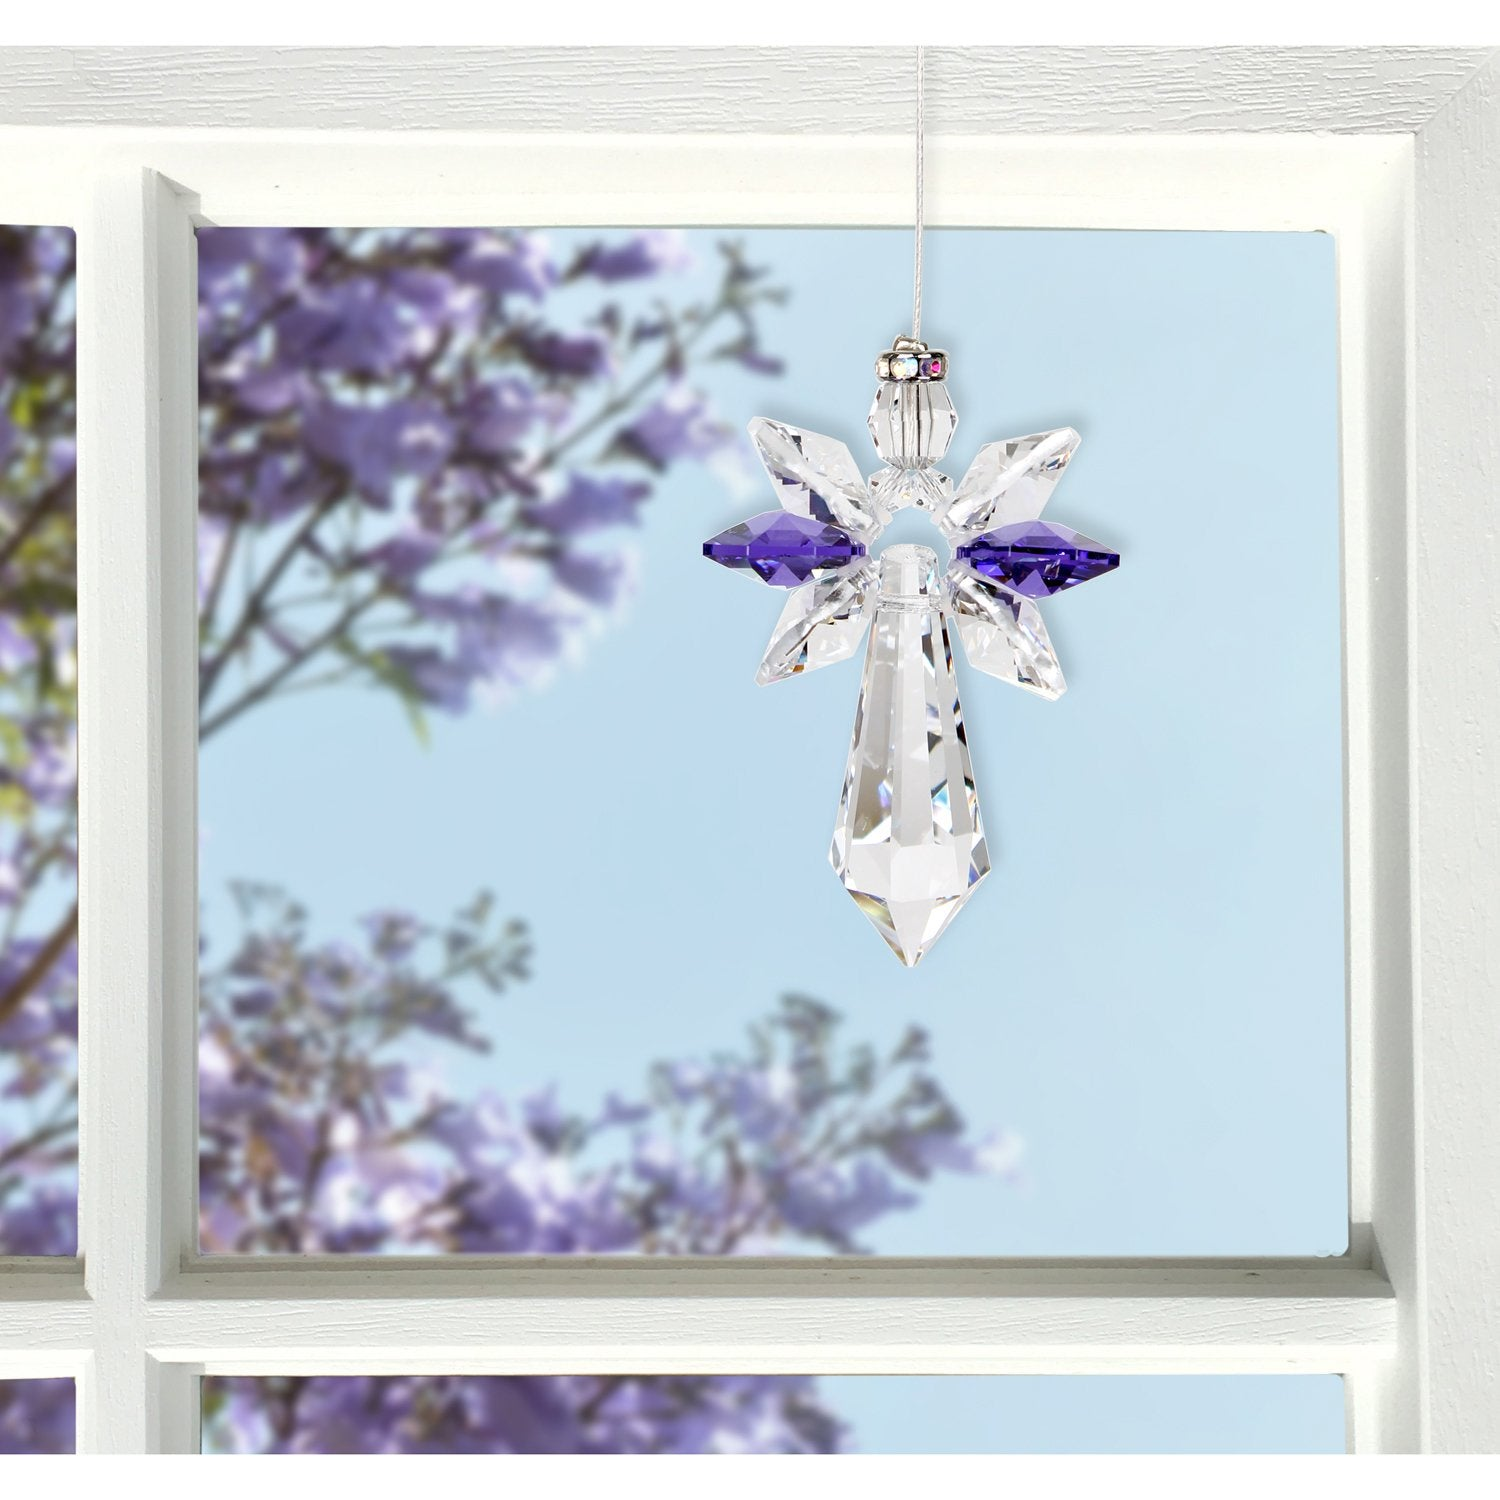 Crystal Guardian Angel Suncatcher - Large, Amethyst lifestyle image